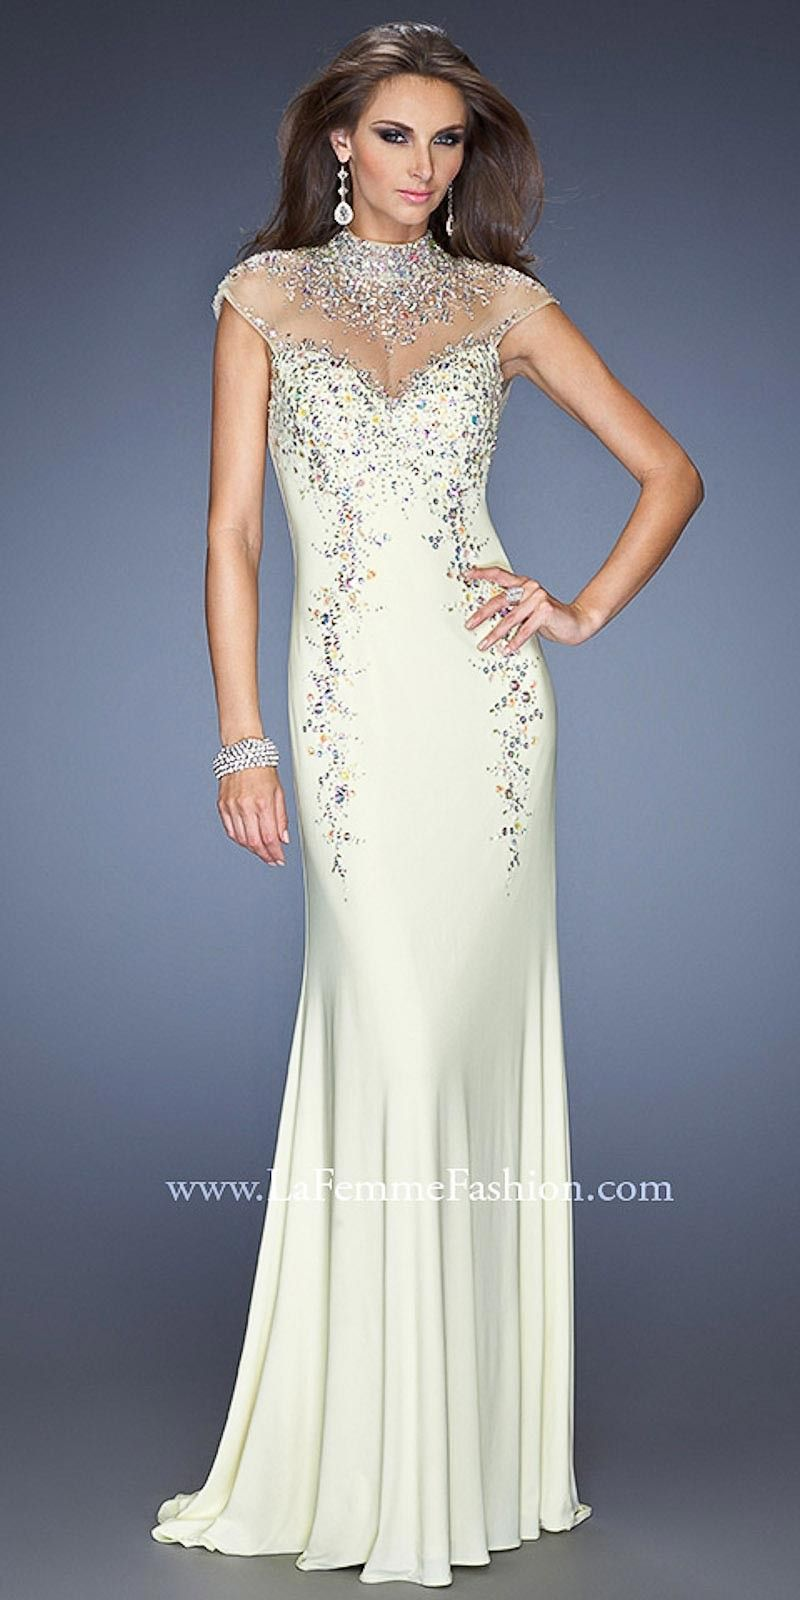 Royalty Inspired High Neck Prom Dresses by Gigi from La Femme ...